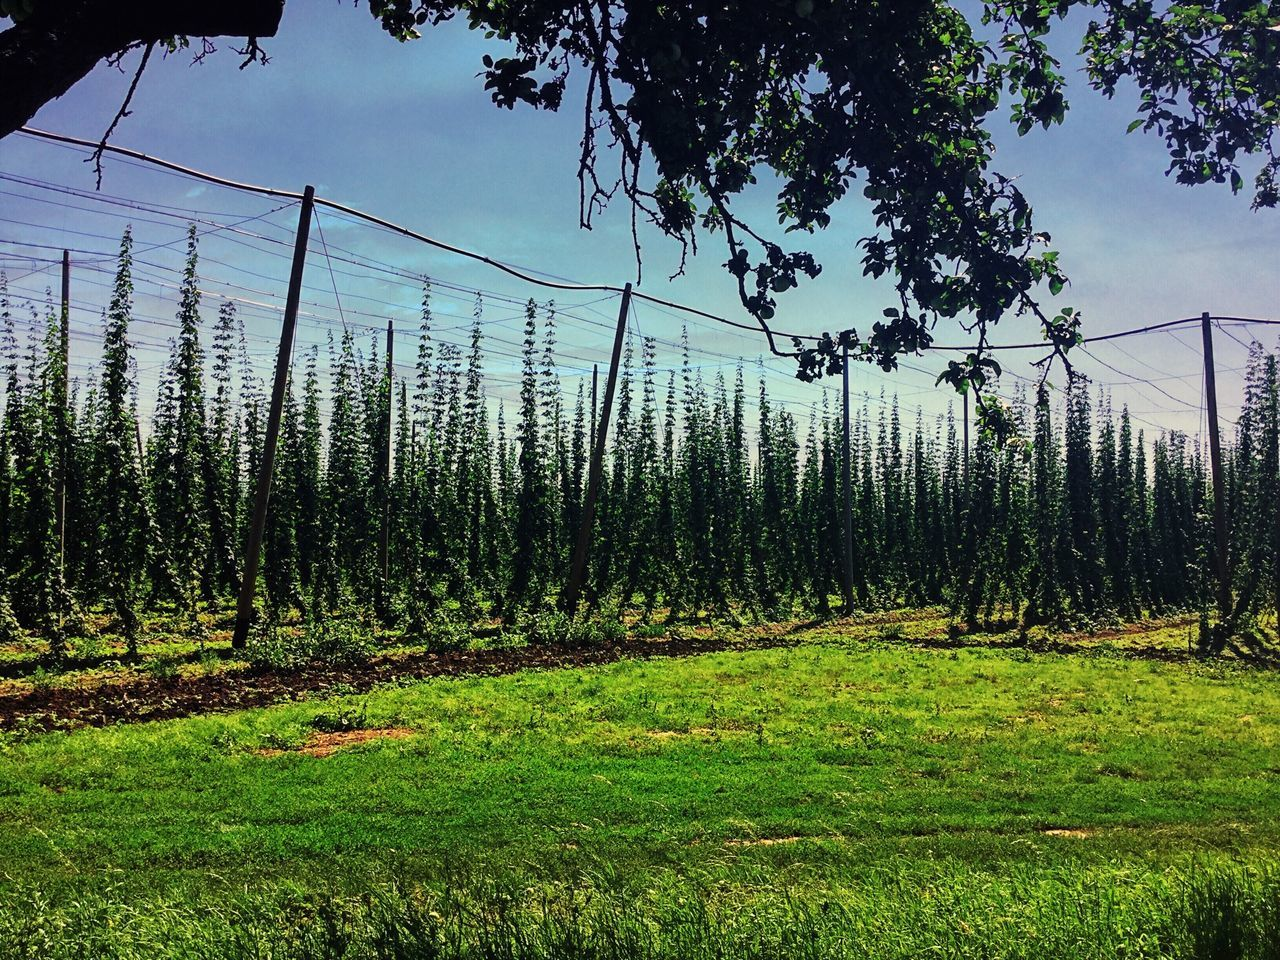 Growing hops in a hops fields in Moravia. Hops Beer Hop Trellis Garden Summer Moravia Fresh Plants Czech Beer Organic Traveling Hop Rhizomes Herbs Vegetable Brewery Beer Production Lupulo Hopland Crops Cultivation